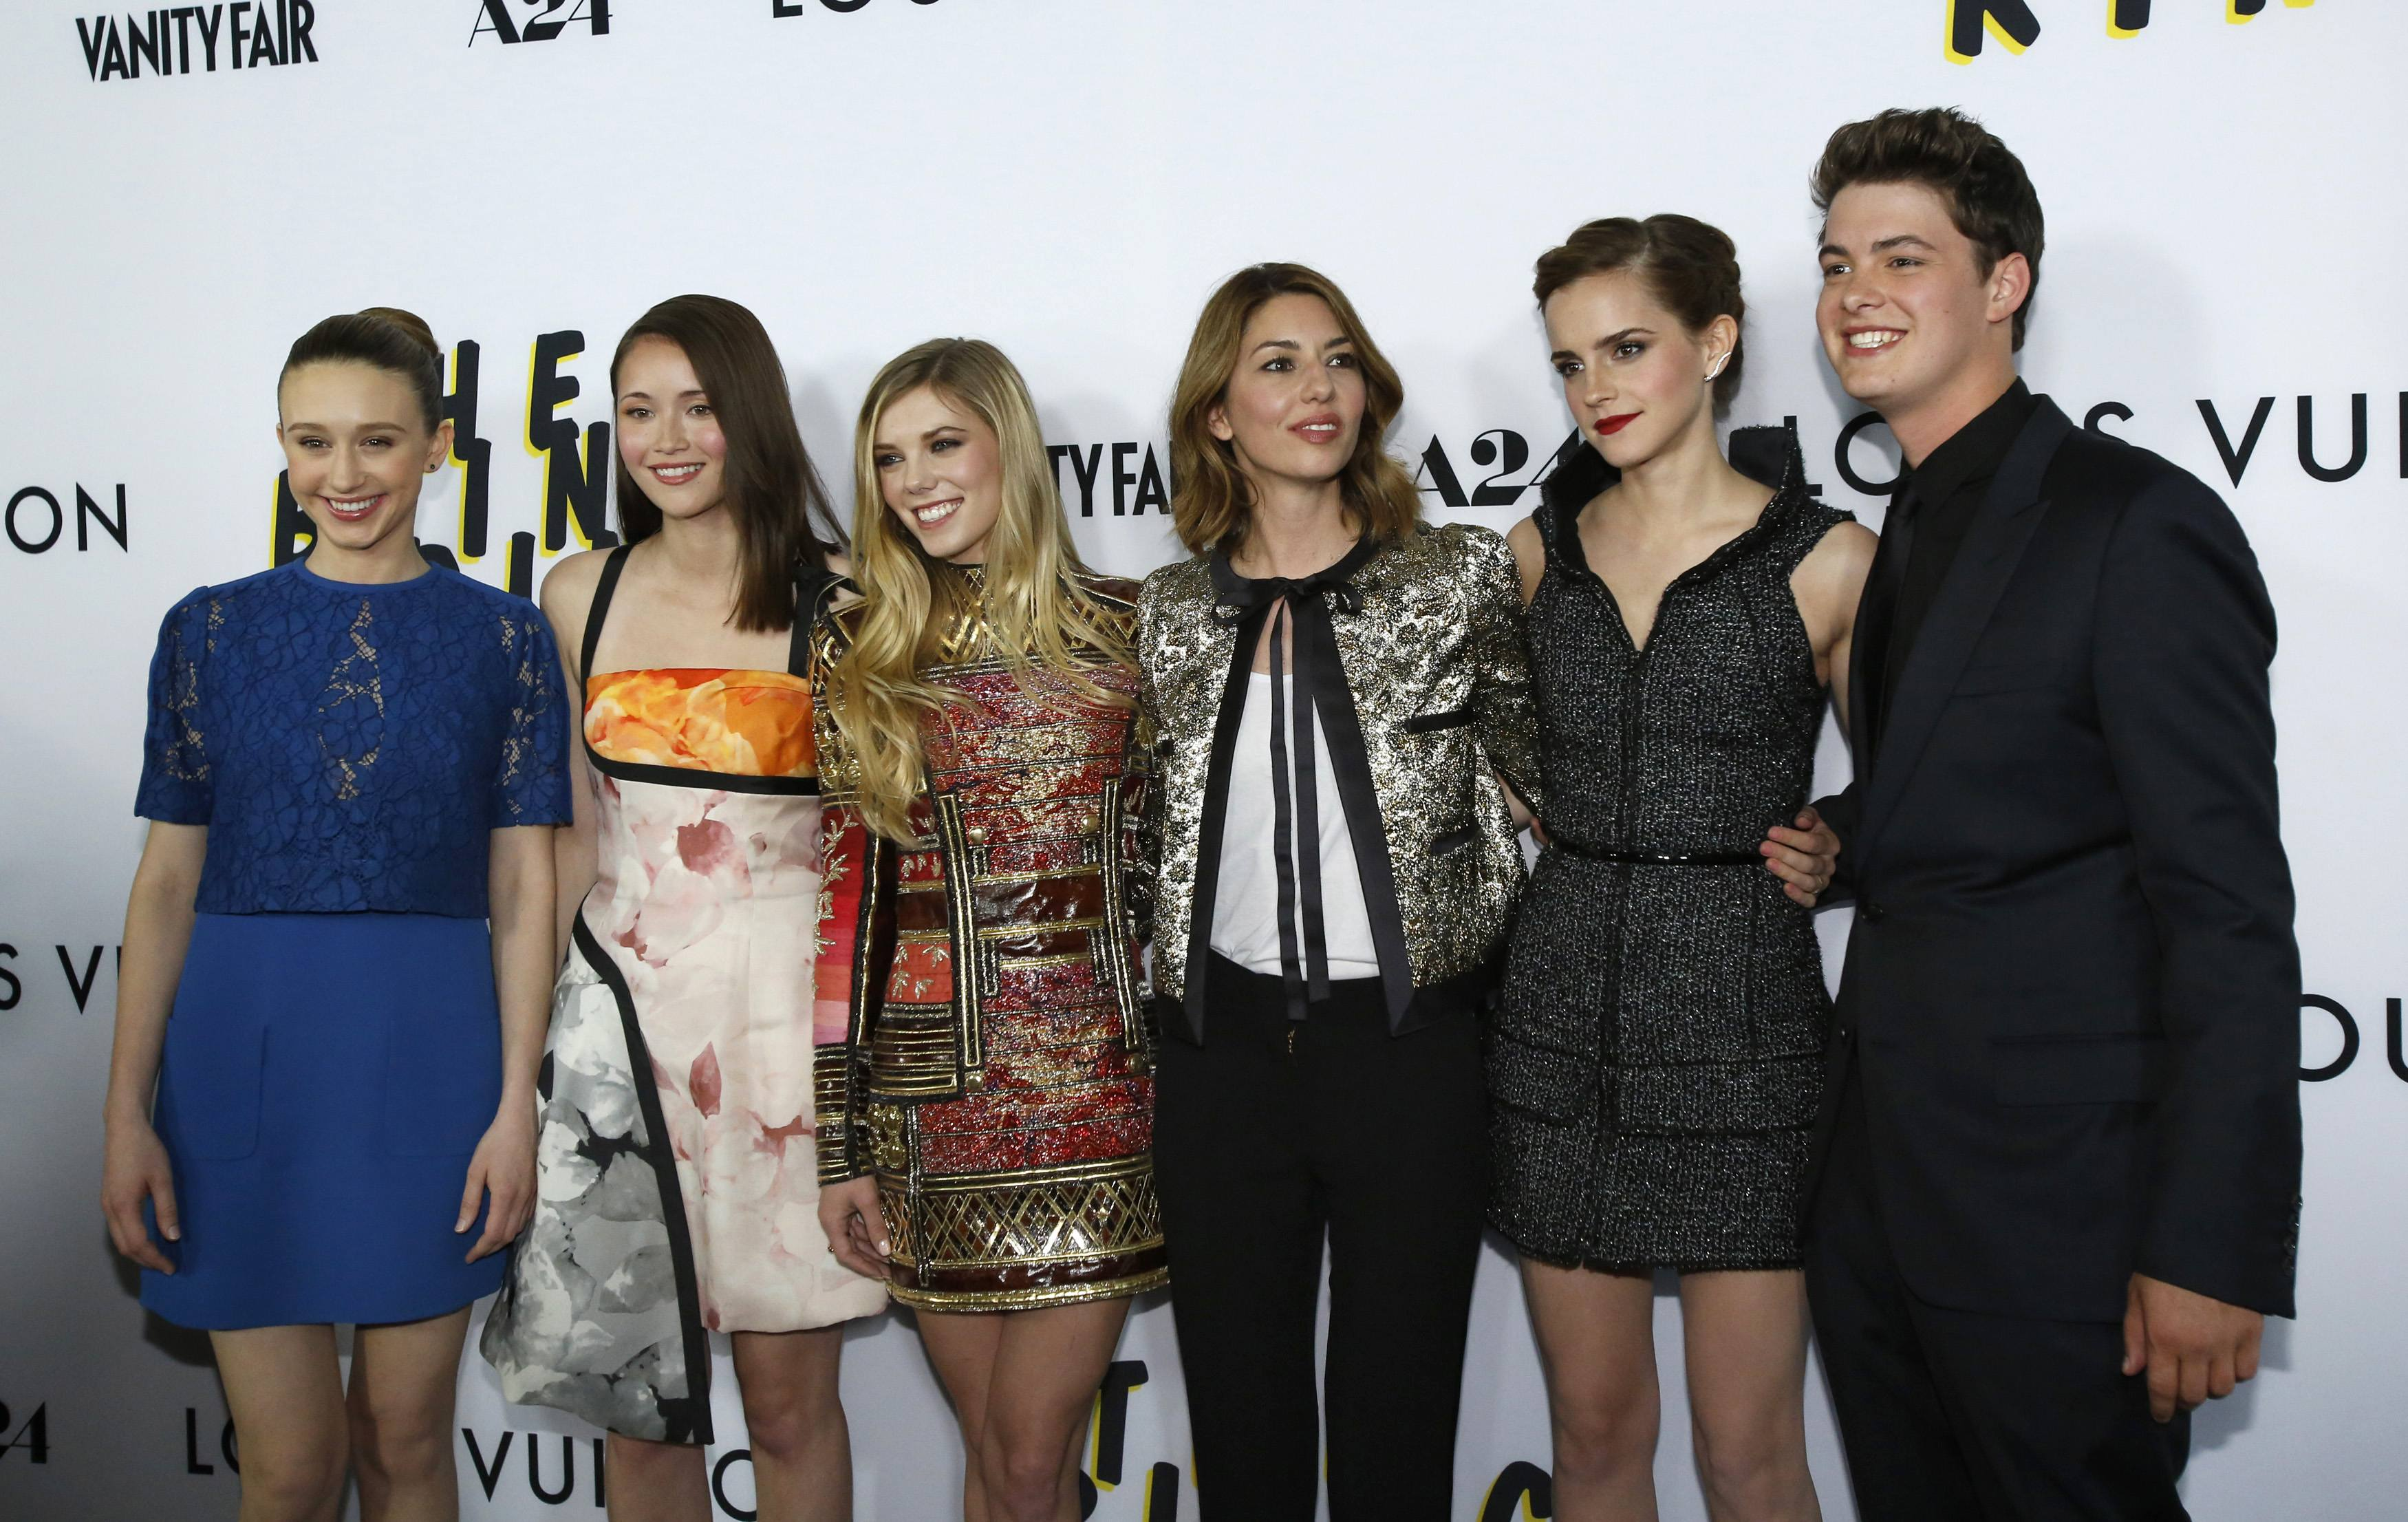 'The Bling Ring' Based On True Events? Director Sofia ...